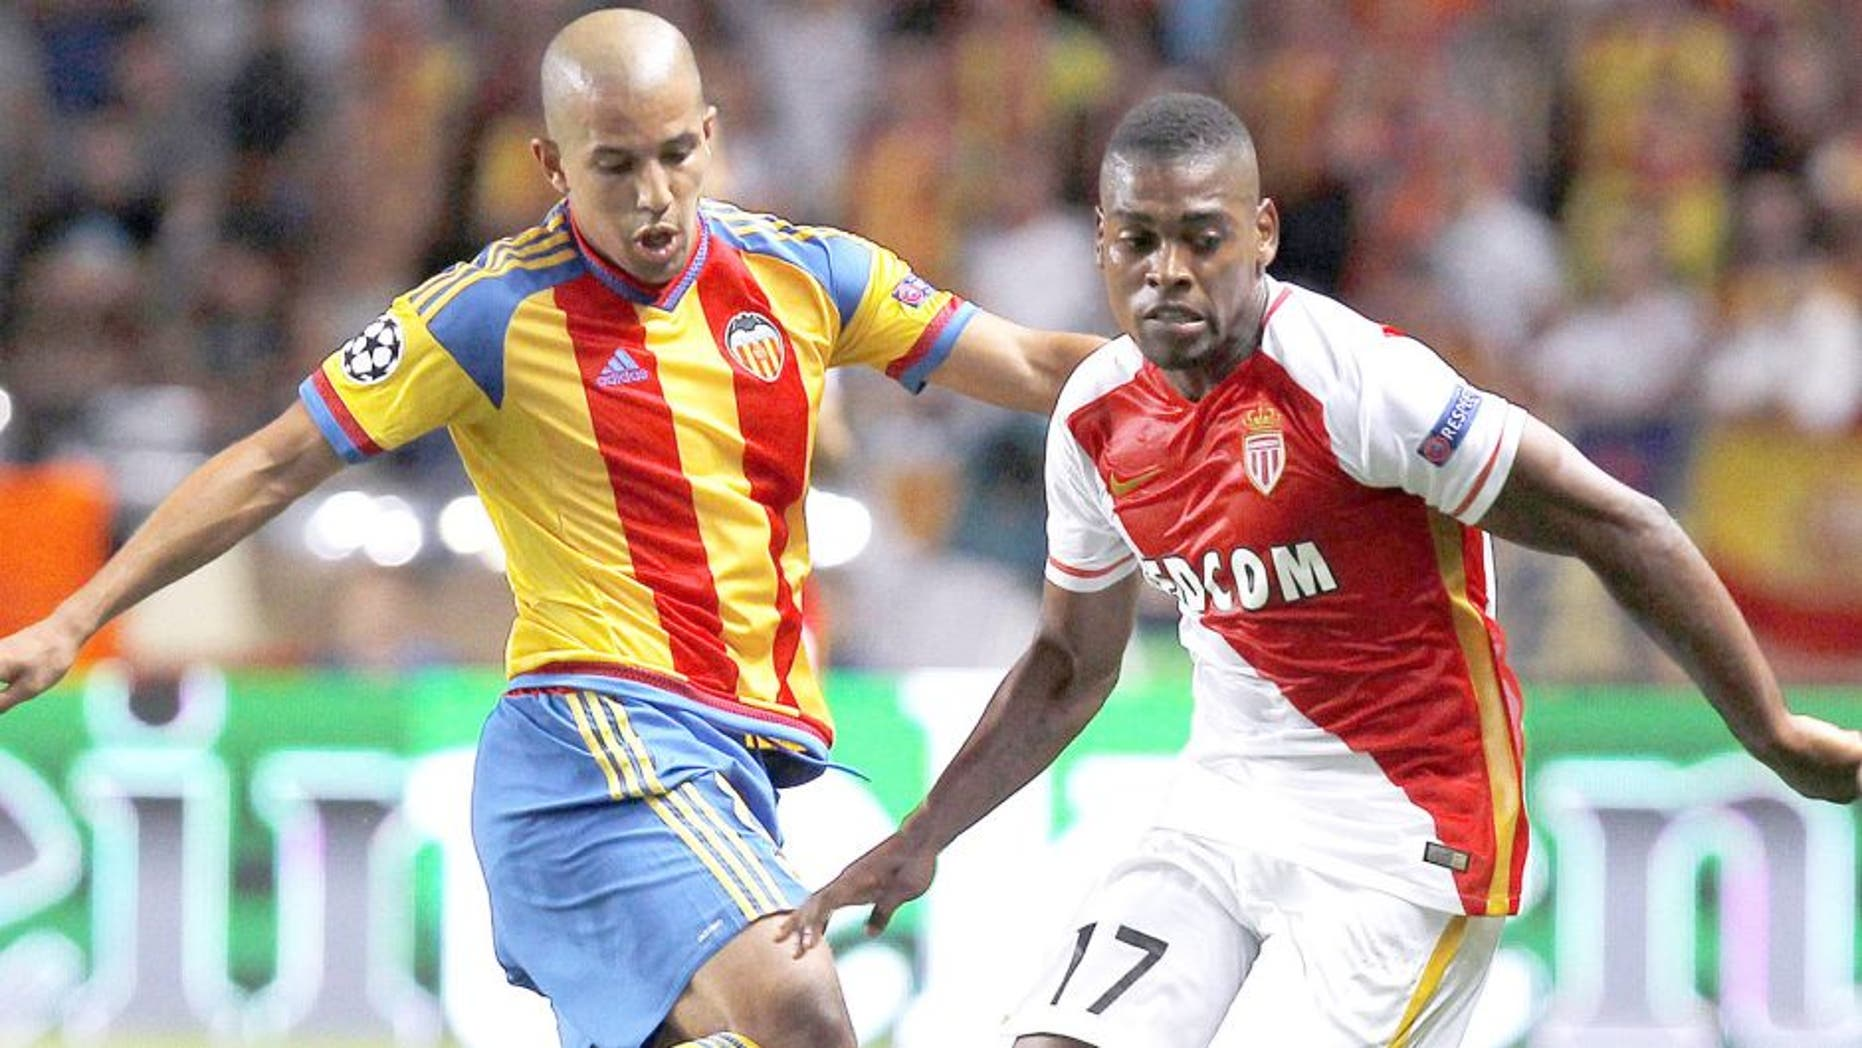 Valencia's French midfielder Sofiane Feghouli (L) vies with Monaco's Portuguese forward Ivan Cavaleiro (R) during the UEFA Champions League playoff football match between AS Monaco FC vs Valencia CF, at the Louis II Stadium, in Monaco, on August 25, 2015 . AFP PHOTO / JEAN CHRISTOPHE MAGNENET (Photo credit should read JEAN CHRISTOPHE MAGNENET/AFP/Getty Images)